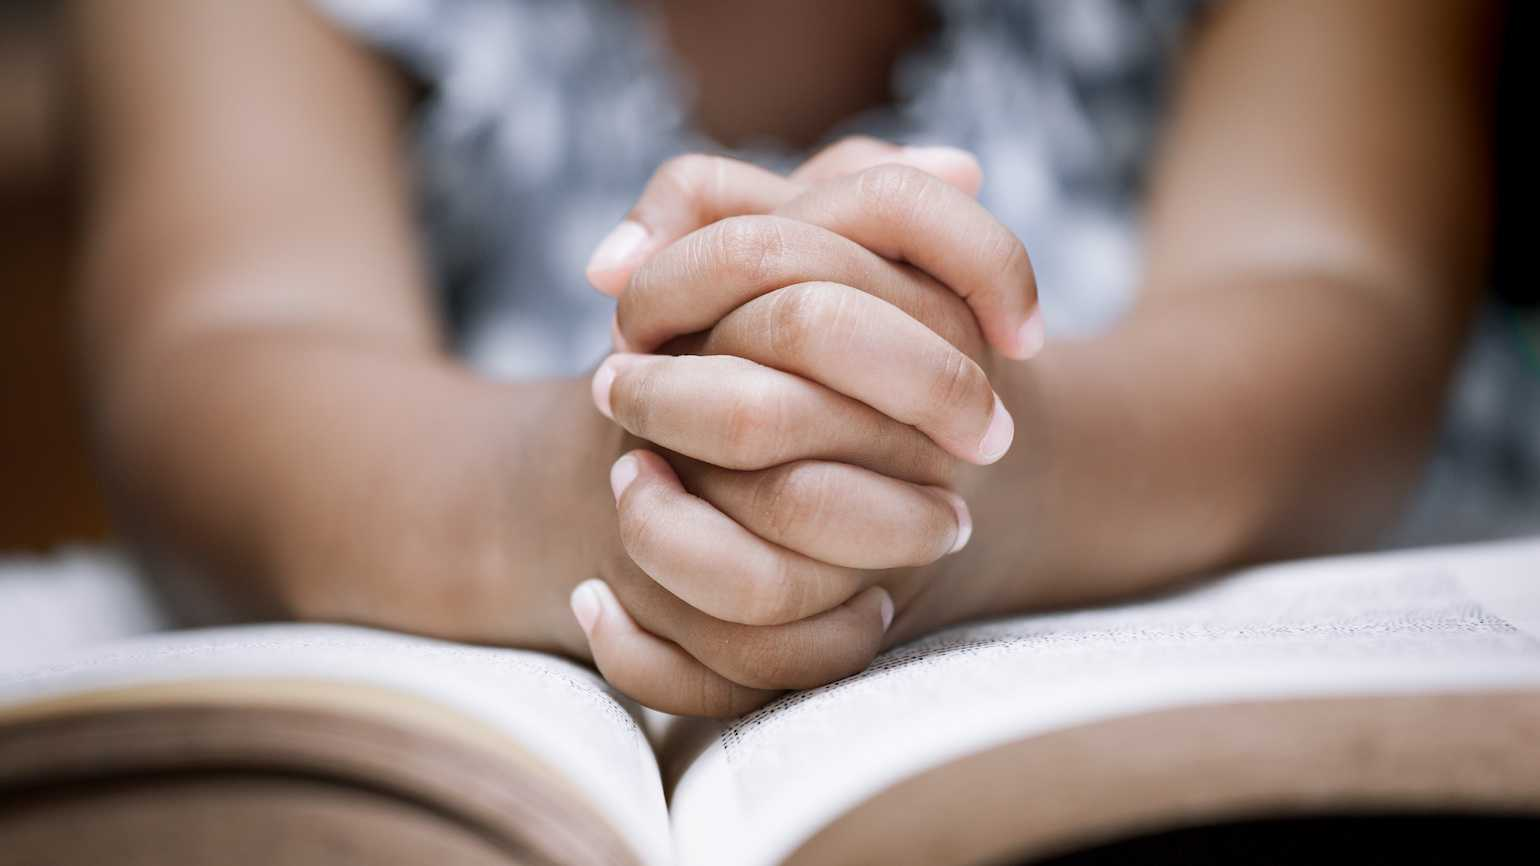 6 Bible Verses for Healing Mind, Body and Spirit